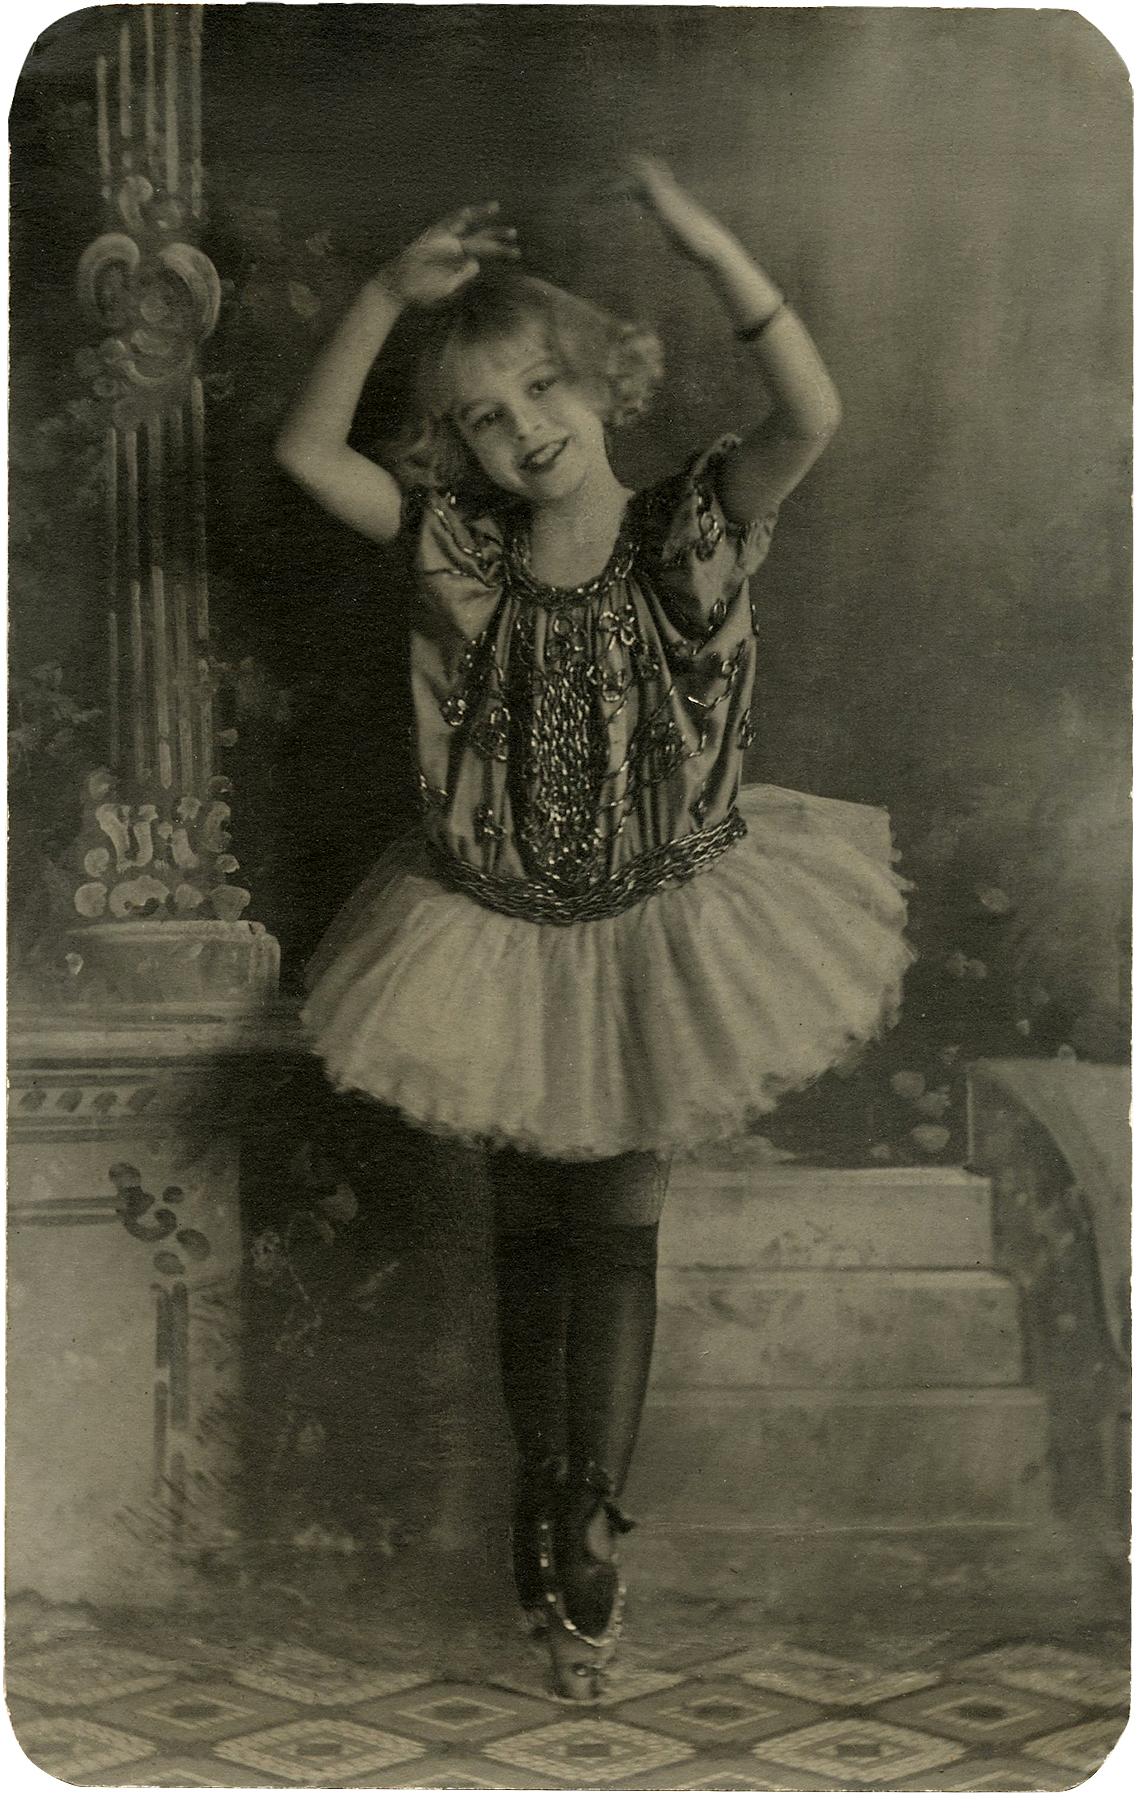 Vintage Ballerina Girl Photo Download